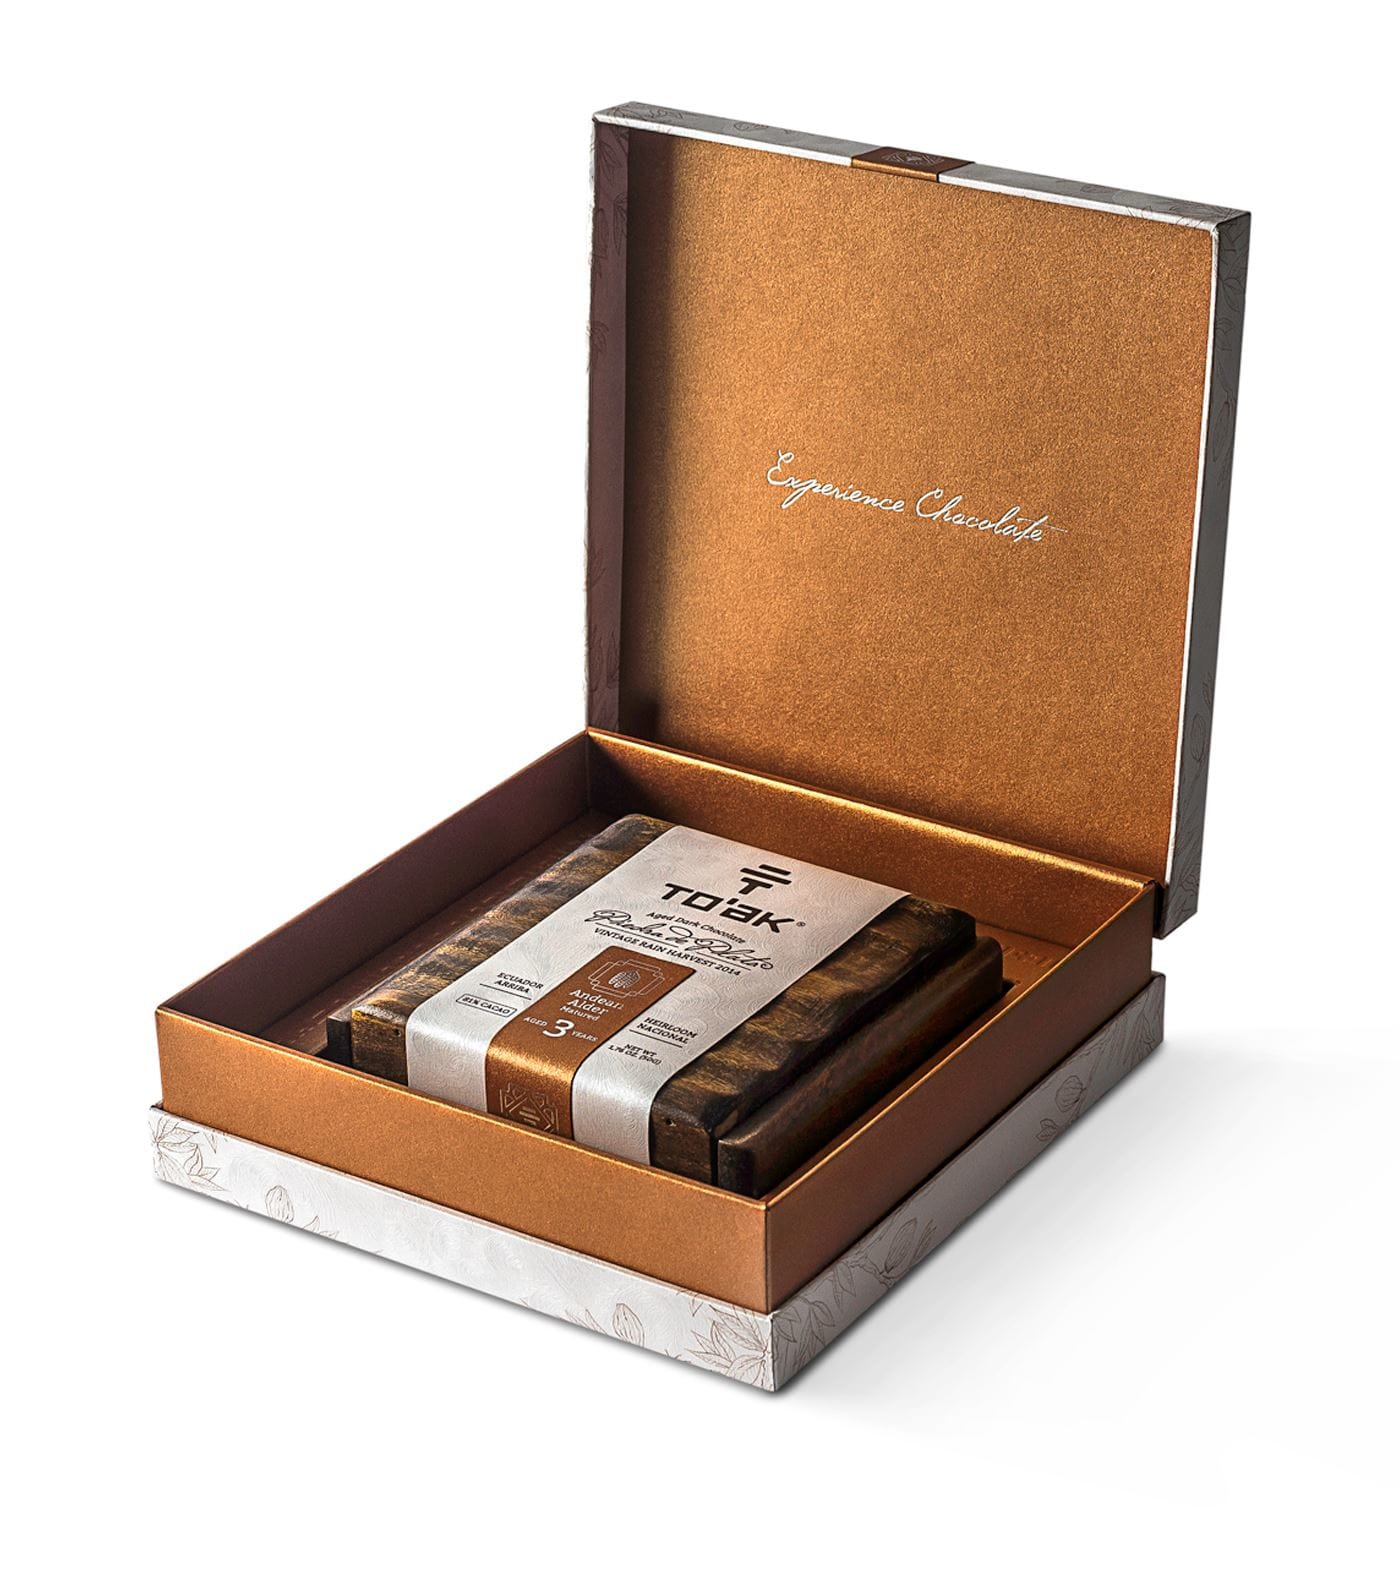 gift guide, rare chocolate bar, aged in cognac cask, in elm wood box